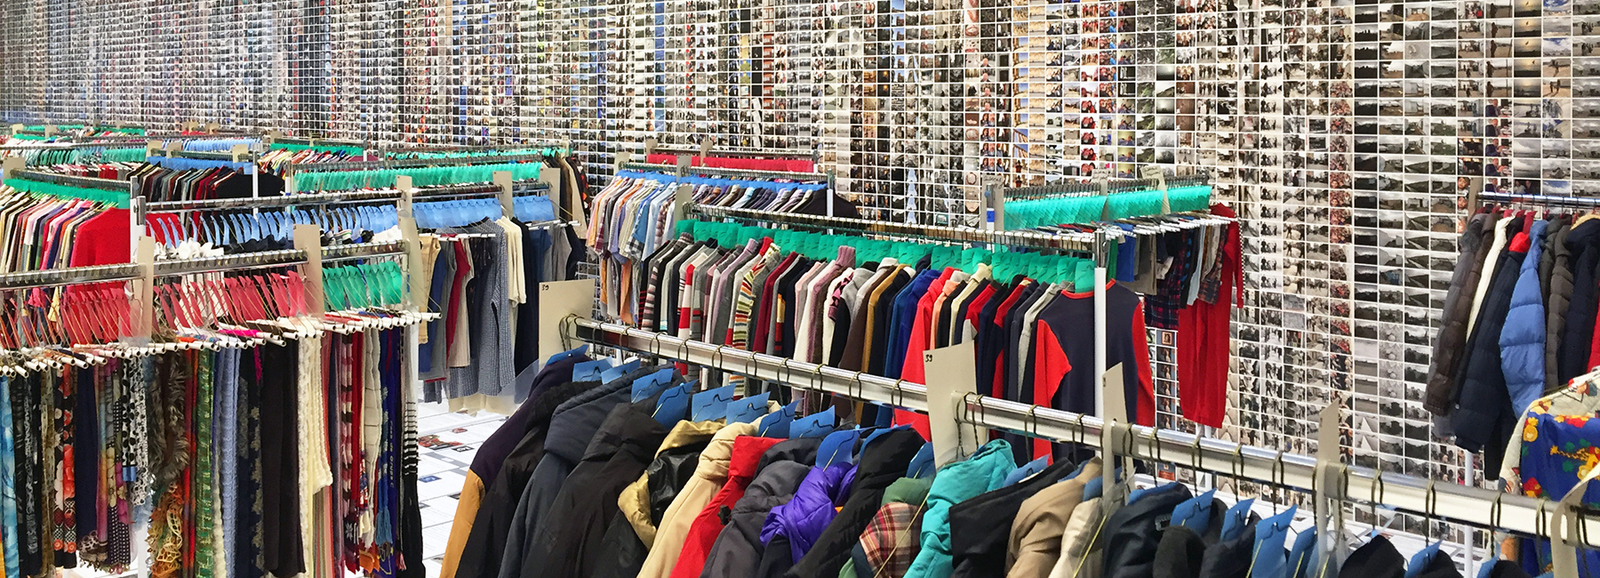 Clothing Stores in Cairo in Egypt | Refugees Egypt